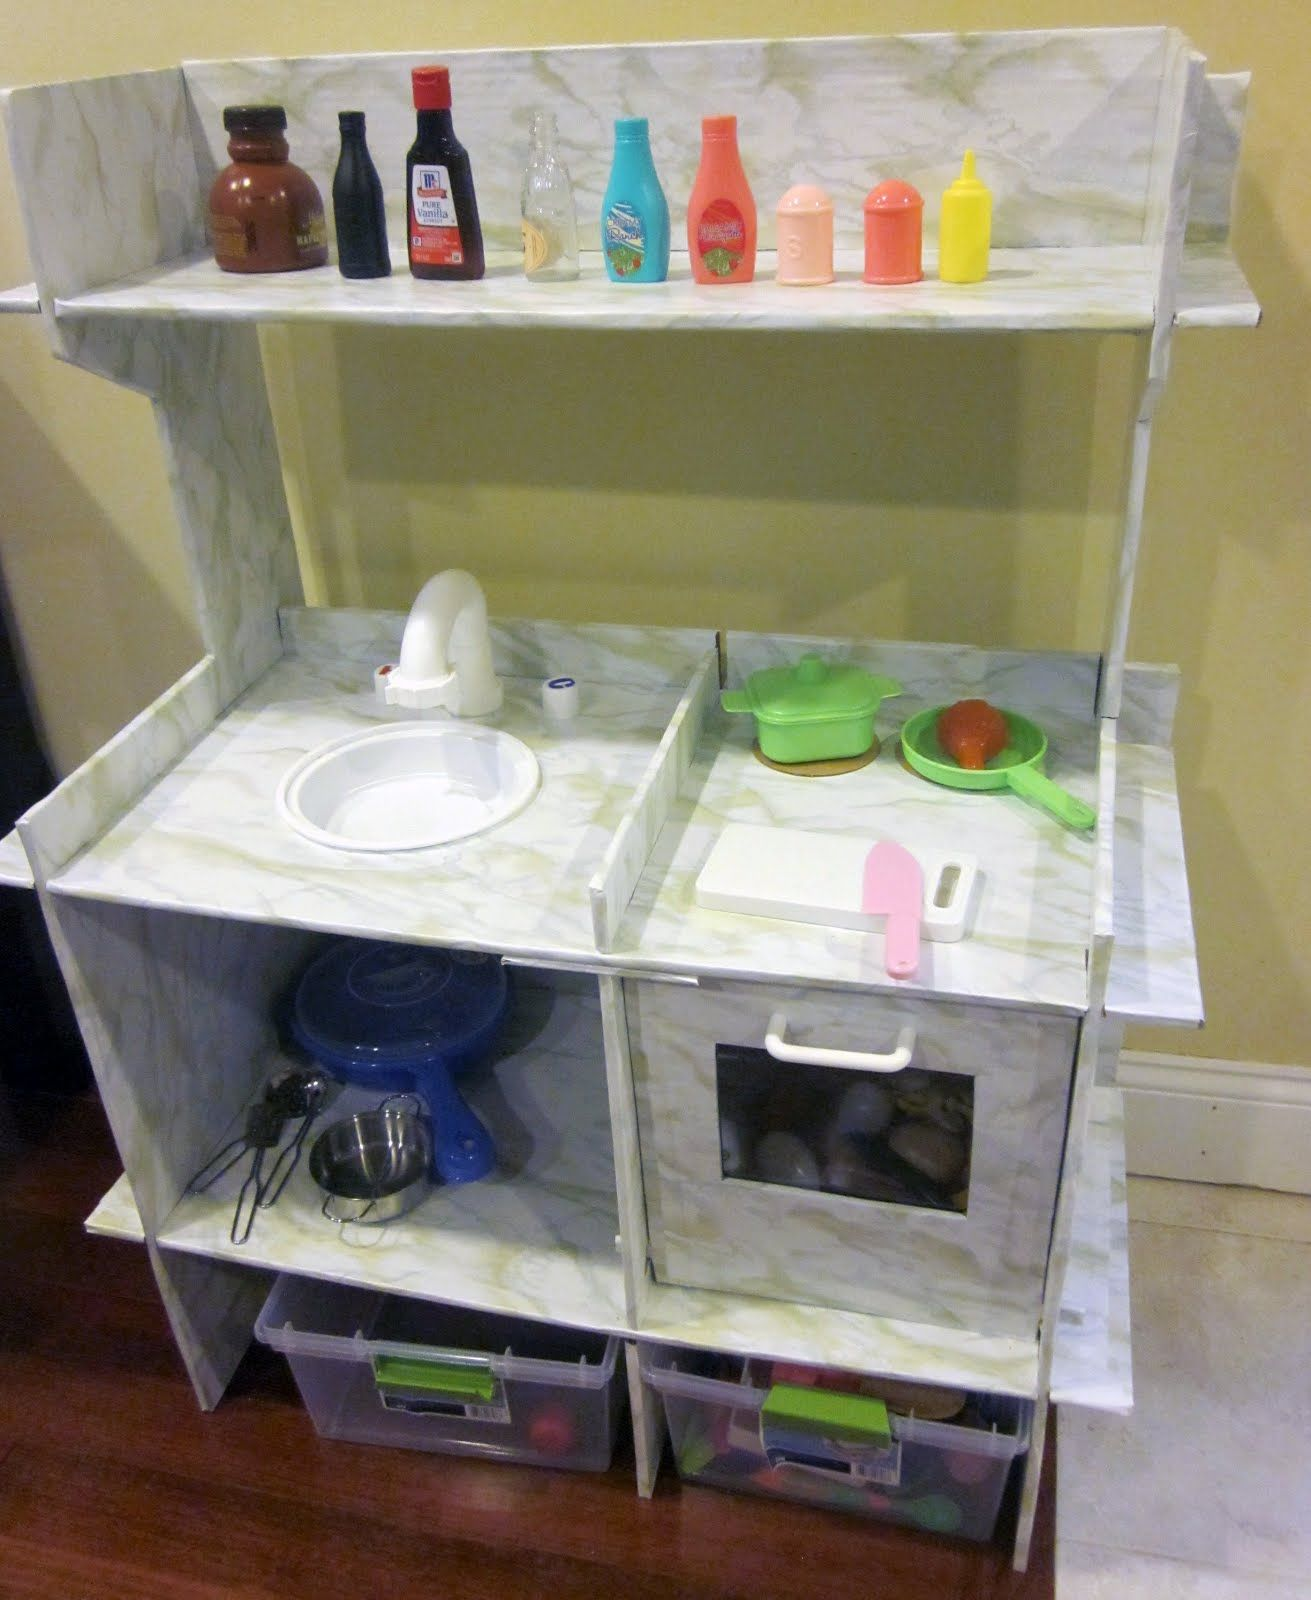 New Little Kitchen Play kitchen, Diy cardboard